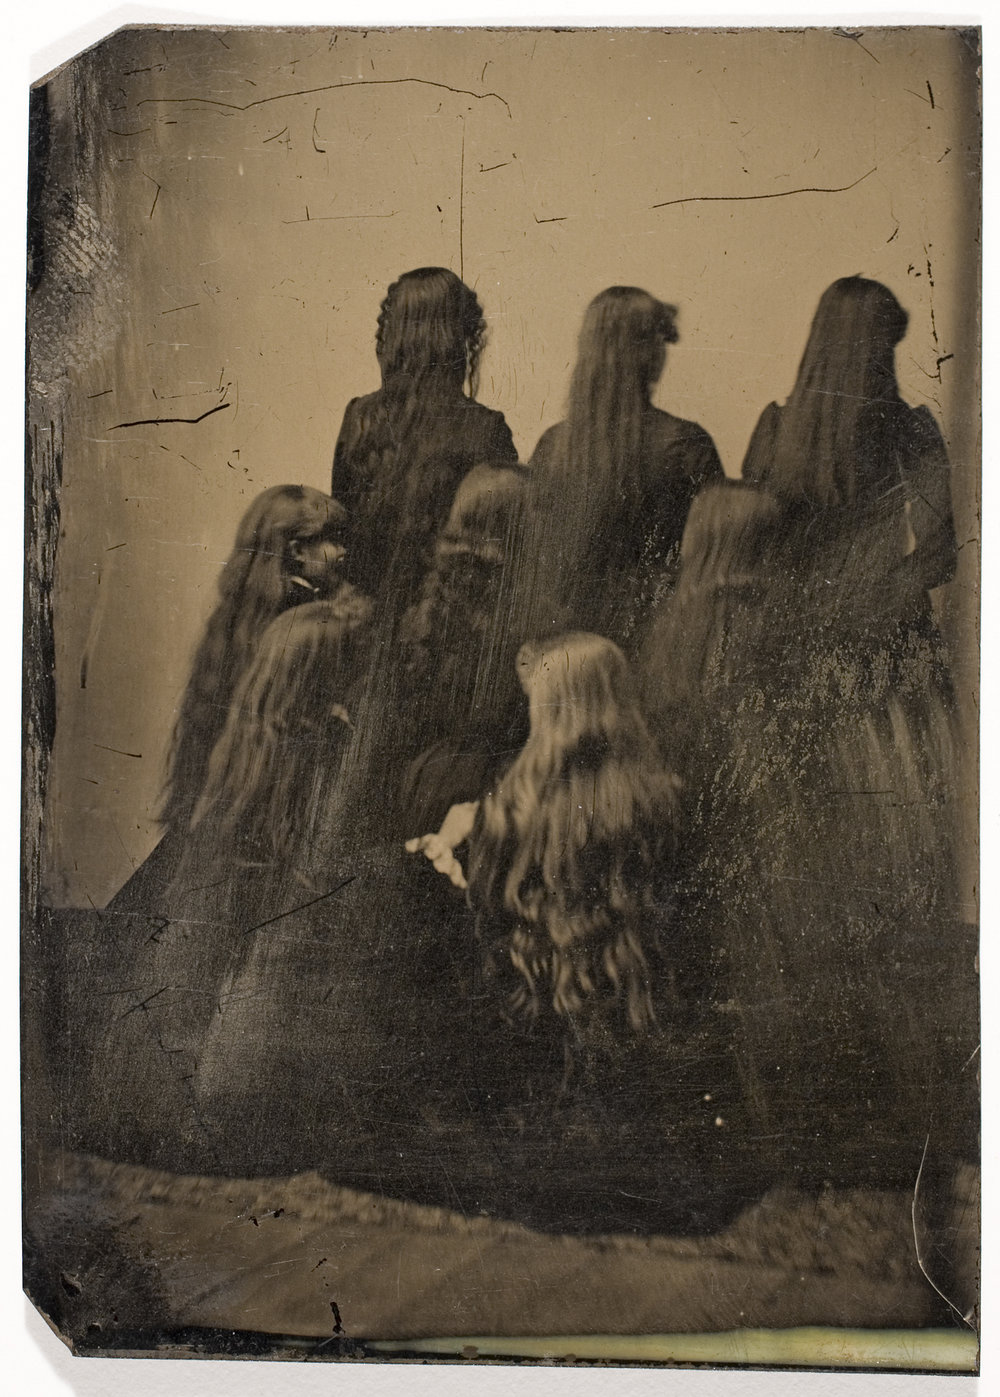 Unidentified Photographer, [Backs of Eight Unidentified Women with Long Hair],  ca. 1880. International Center of Photography, Gift of Steven Kasher and Susan Spungen Kasher, 2008 (2008.81.72)